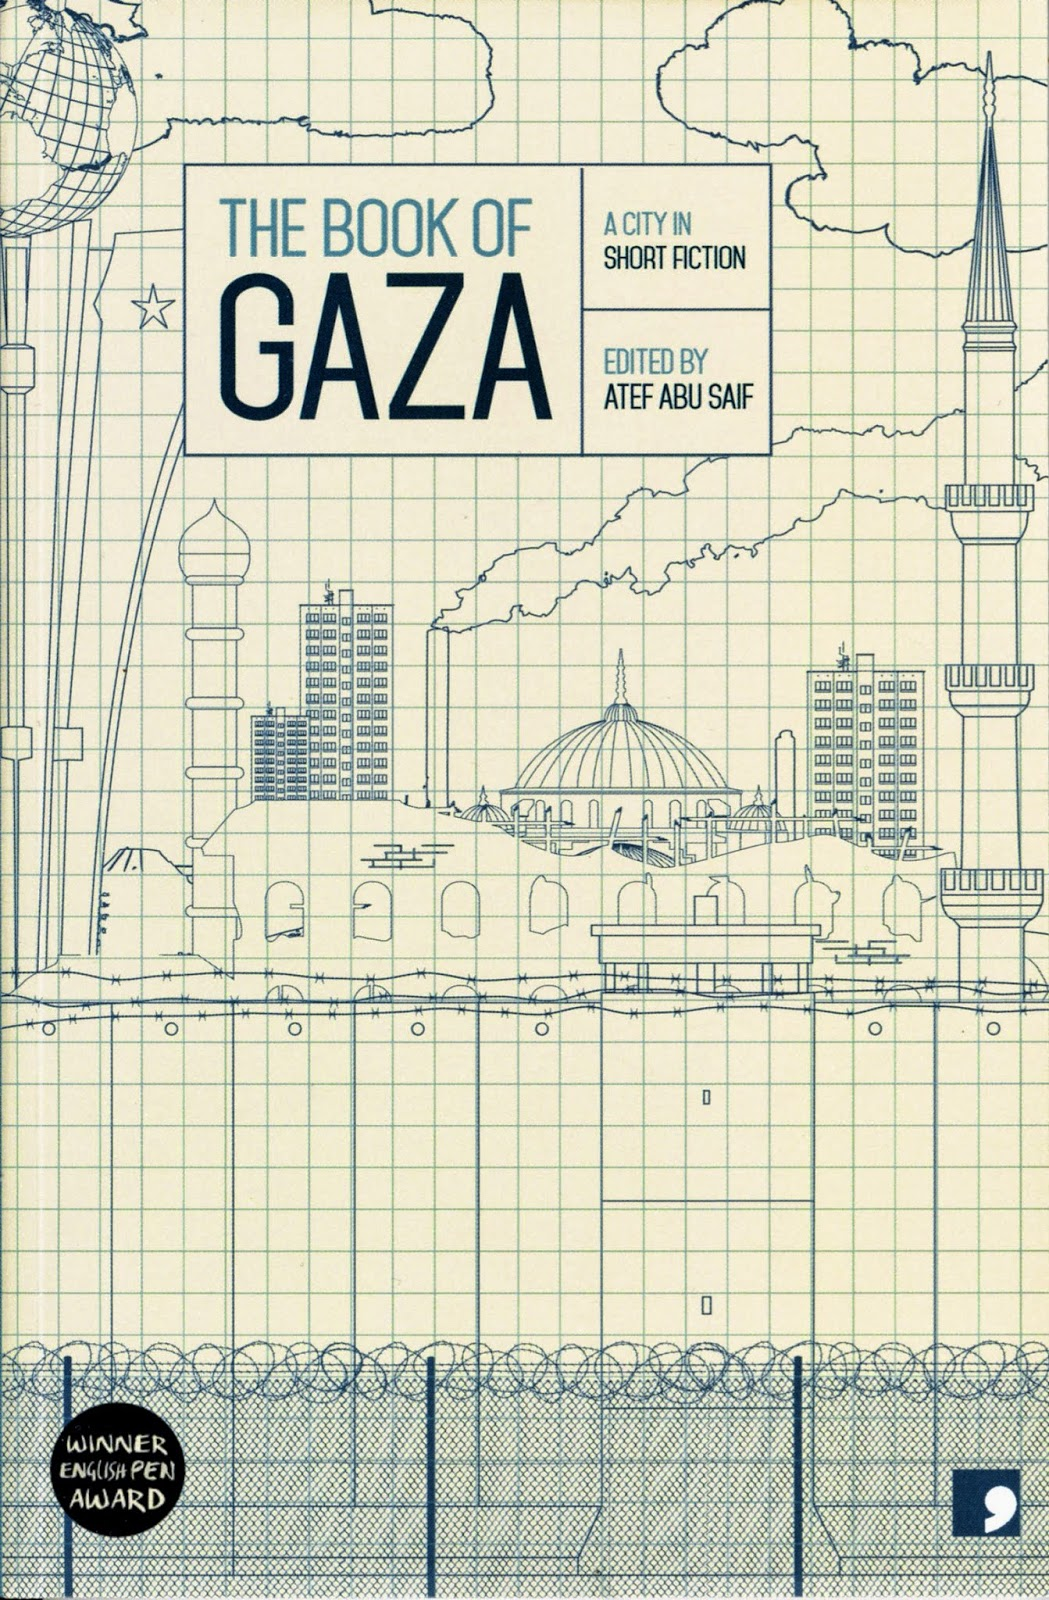 http://commapress.co.uk/books/the-book-of-gaza